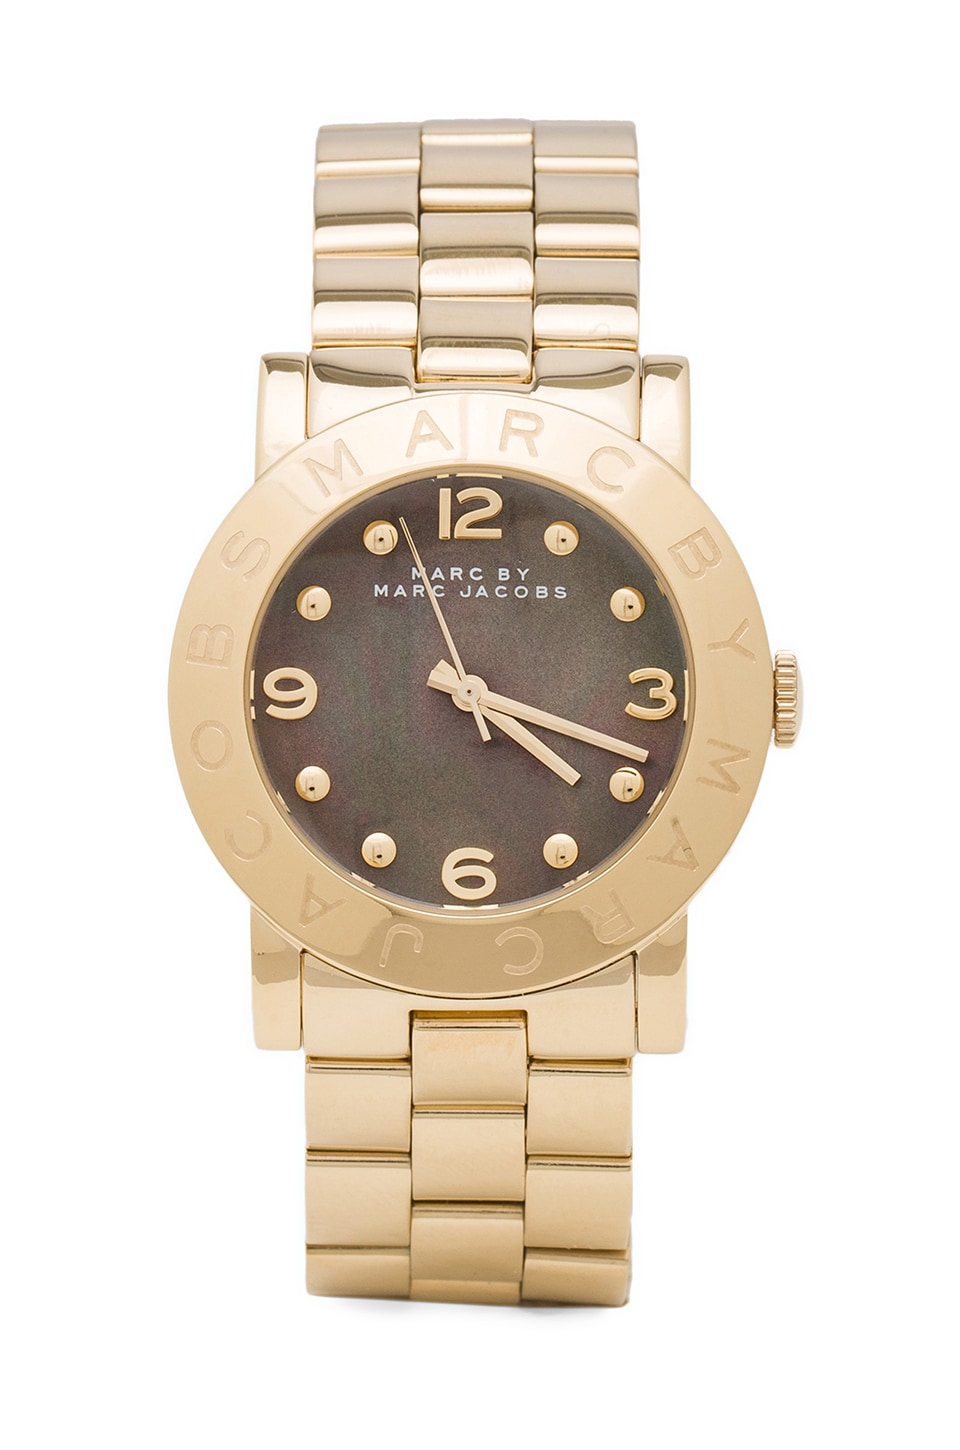 Marc by Marc Jacobs Amy Watch in Gold/Dirty Martini